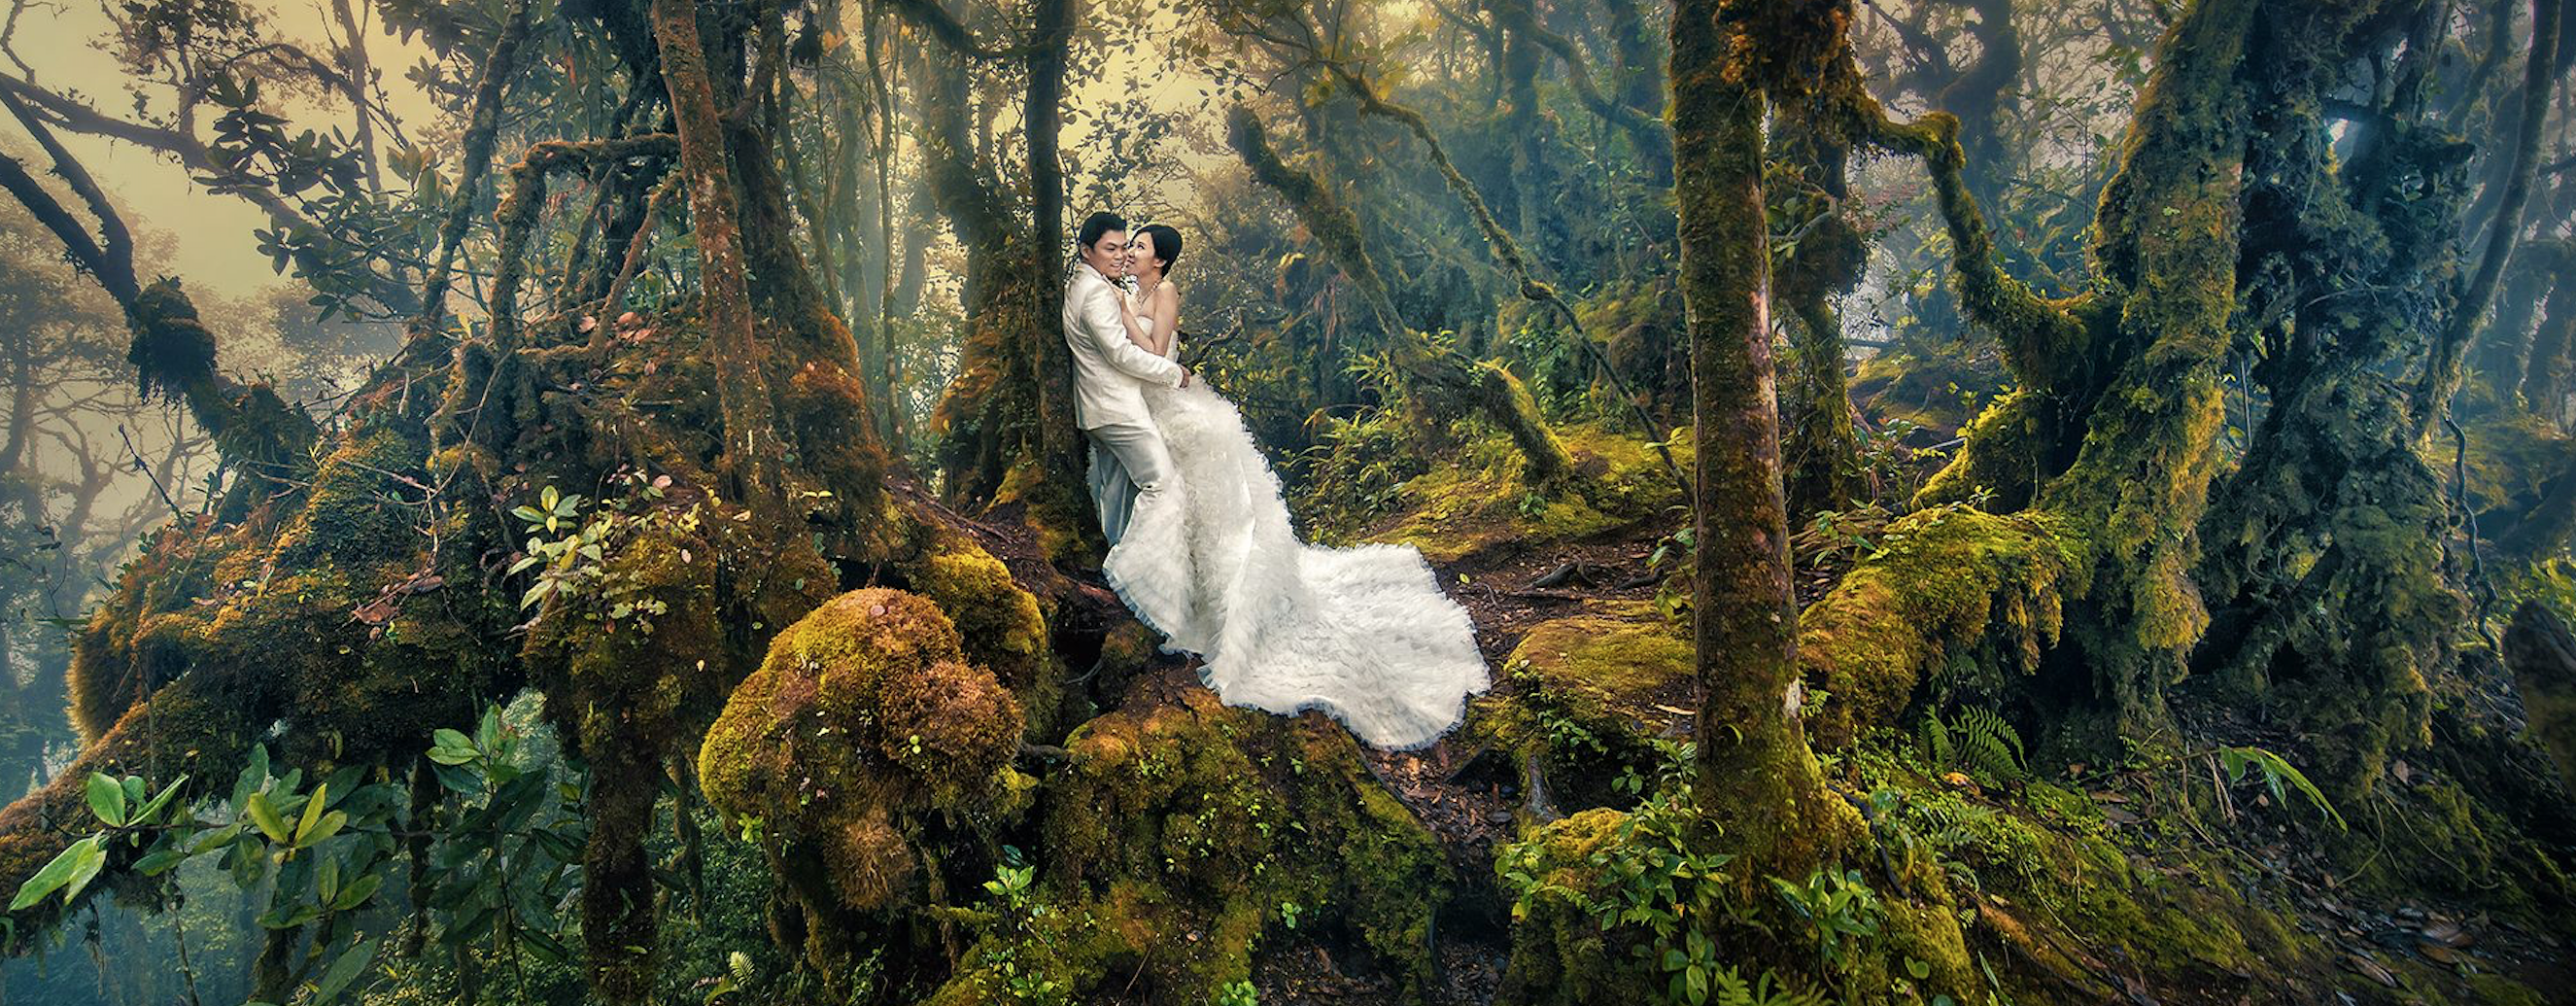 Magical Places Around The World for Your Dream Wedding Photoshoot!